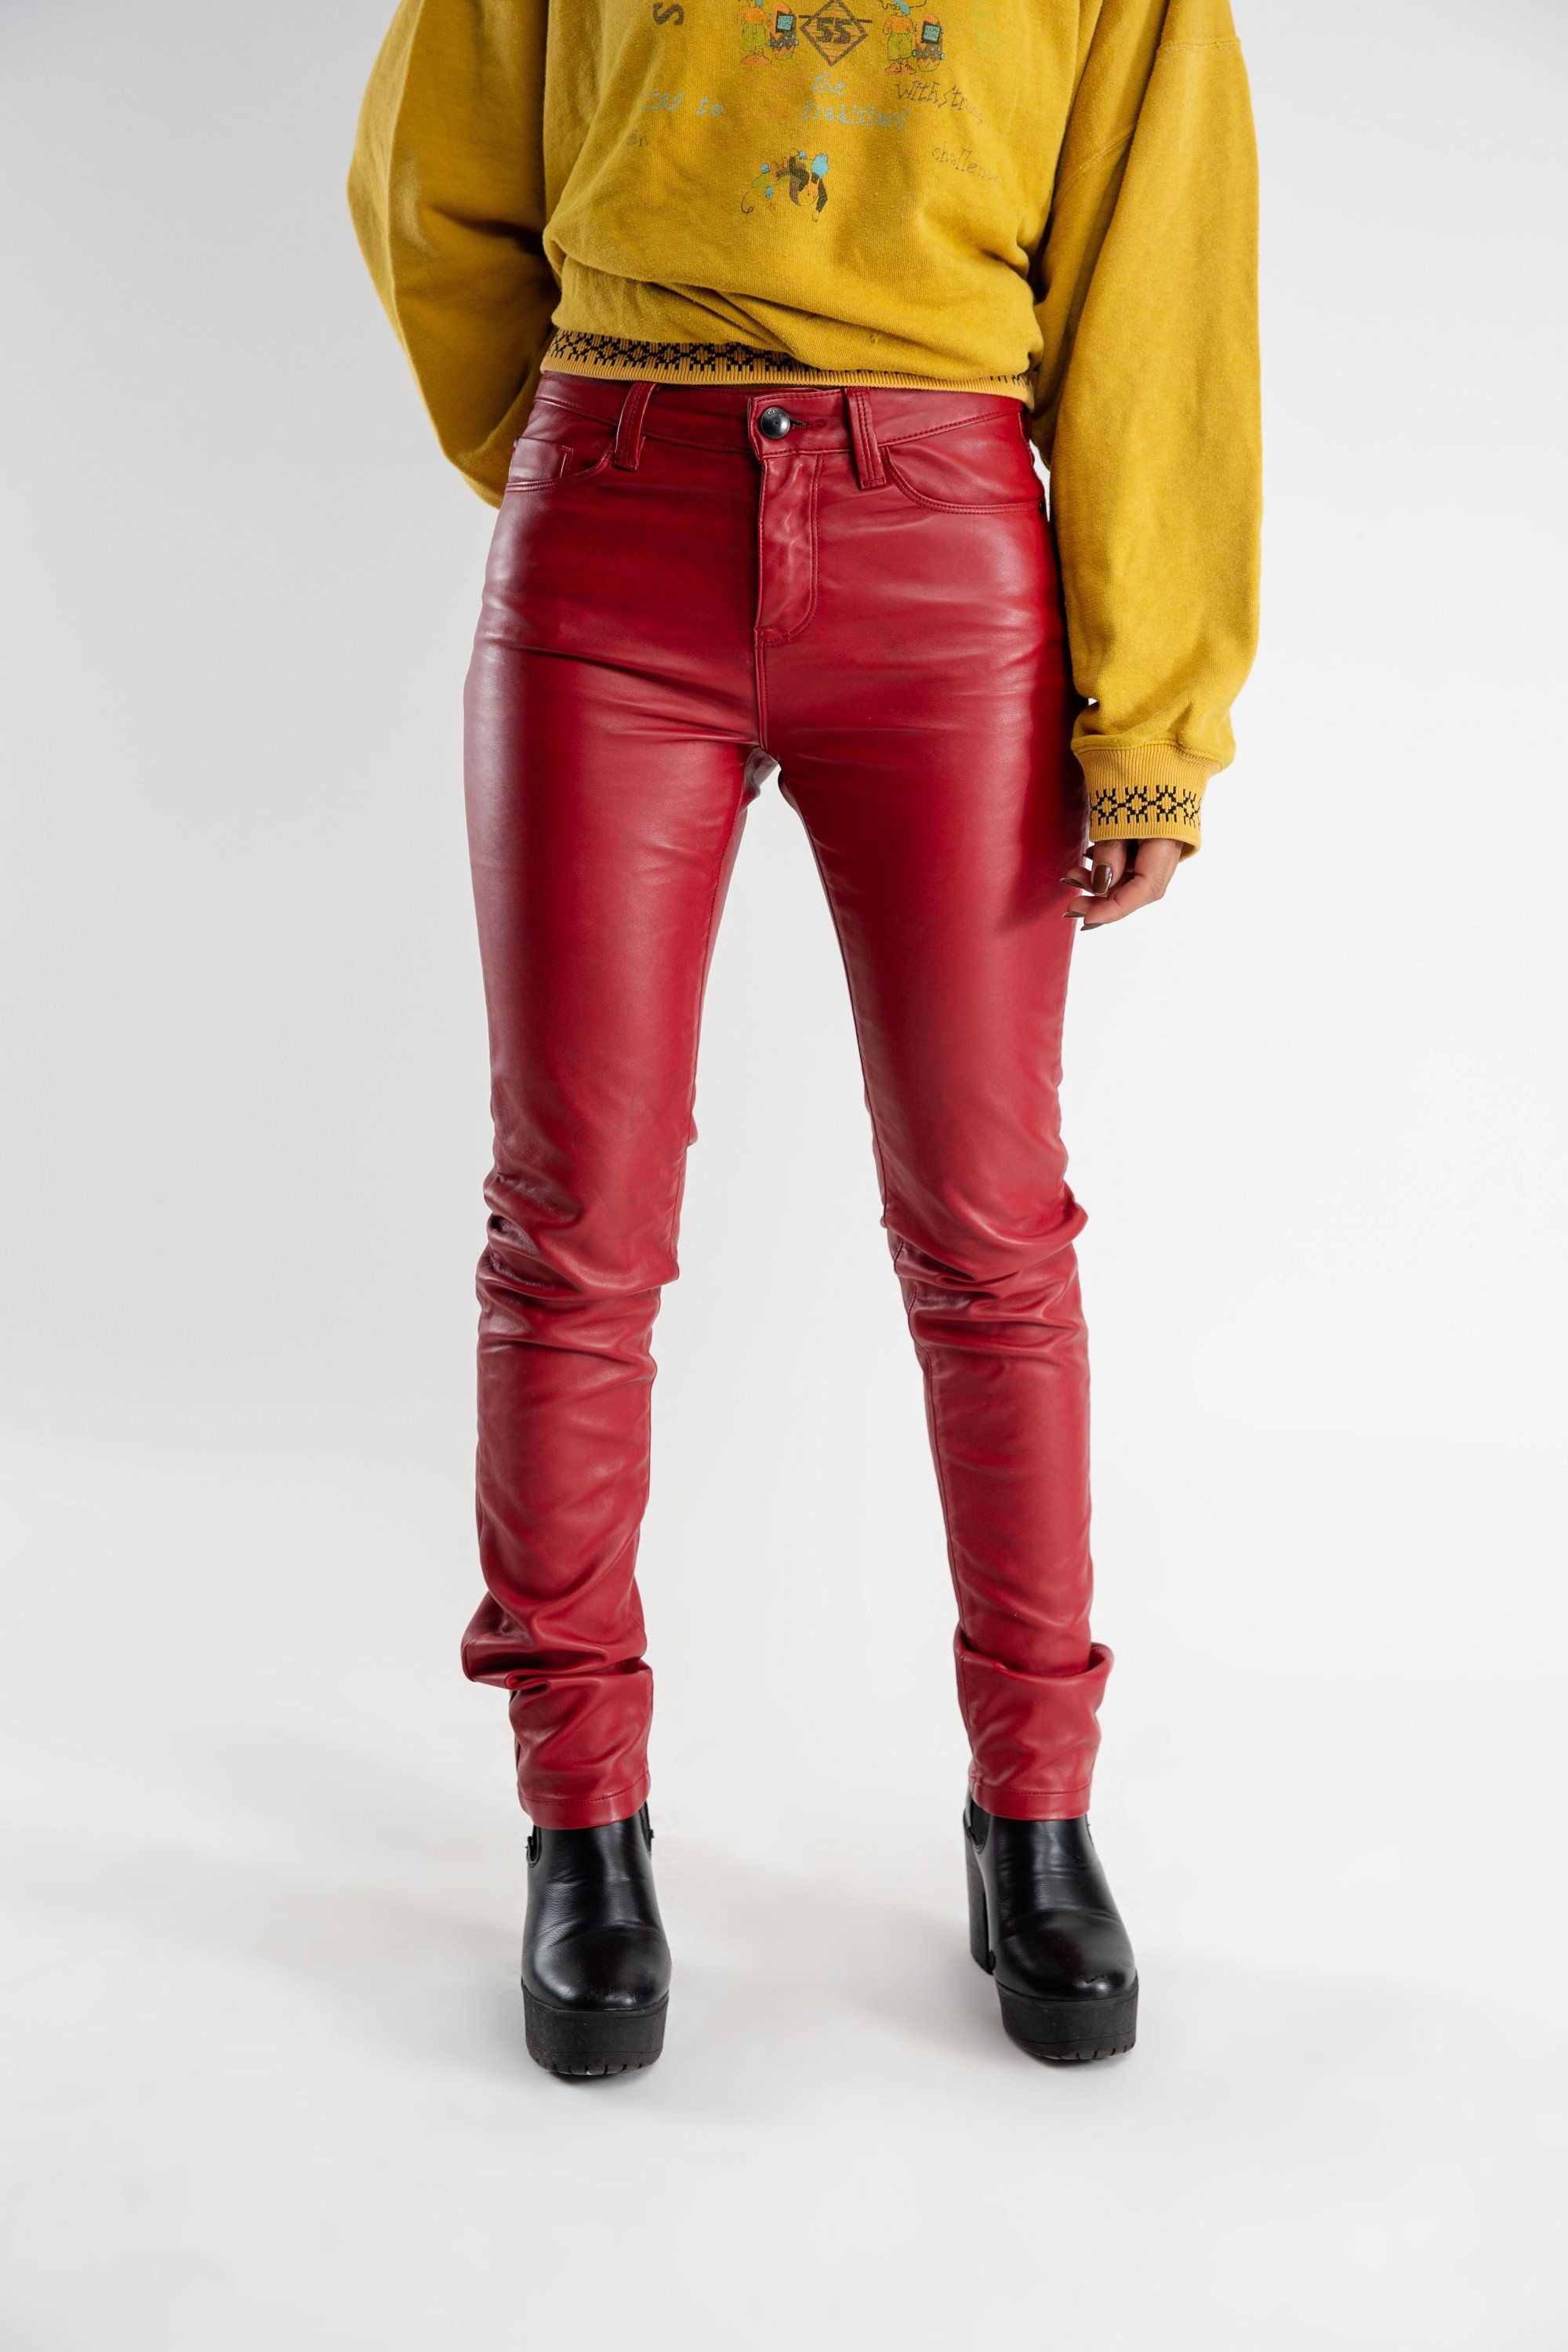 26360980e966f Vintage red faux leather trousers / Women's vegan leather pants / Vintage  plastic trousers / Red latex pants / 90s PVC trousers / Size XS/S by LHITW  on Etsy ...